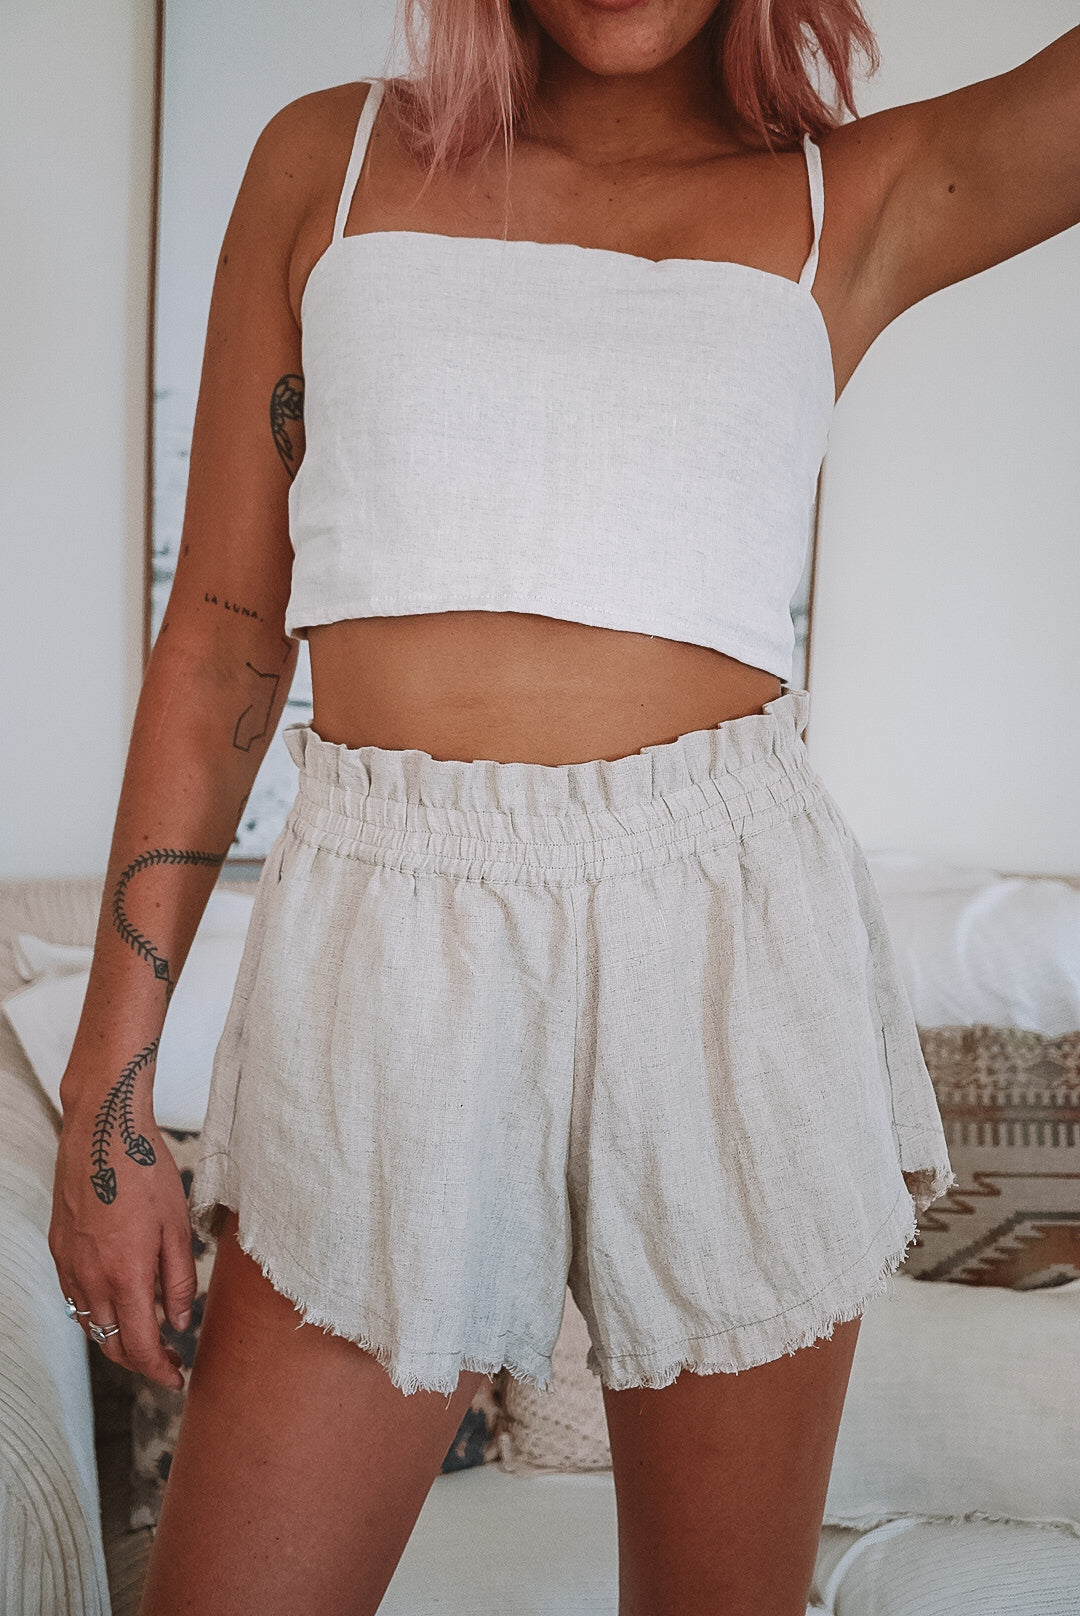 The Sunday Shorts in Natural